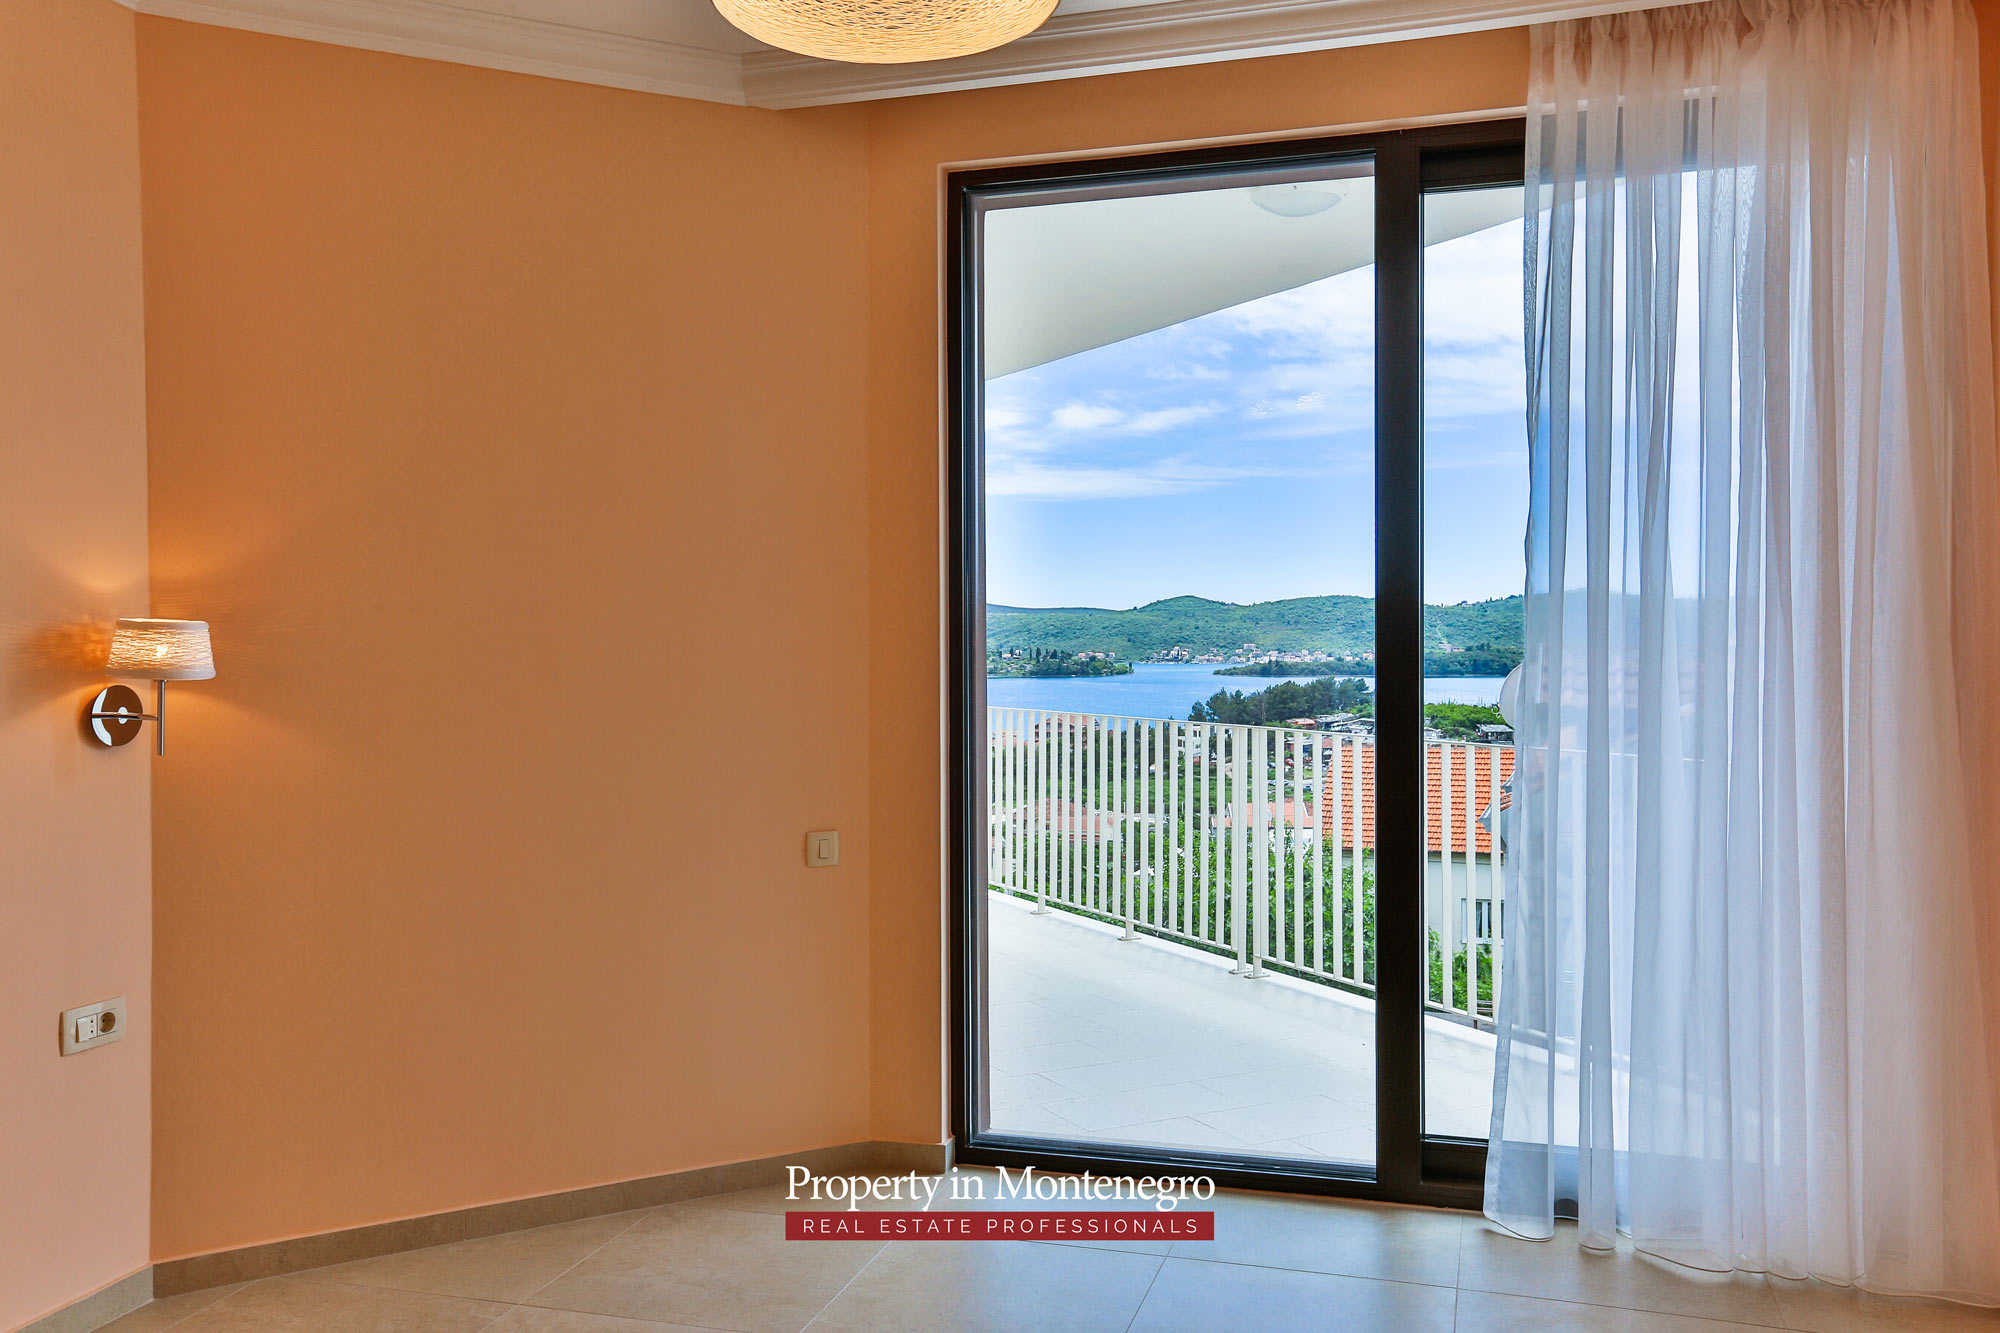 Luxury-villa-with-swimming-pool-for-sale-in-Tivat (7).jpg